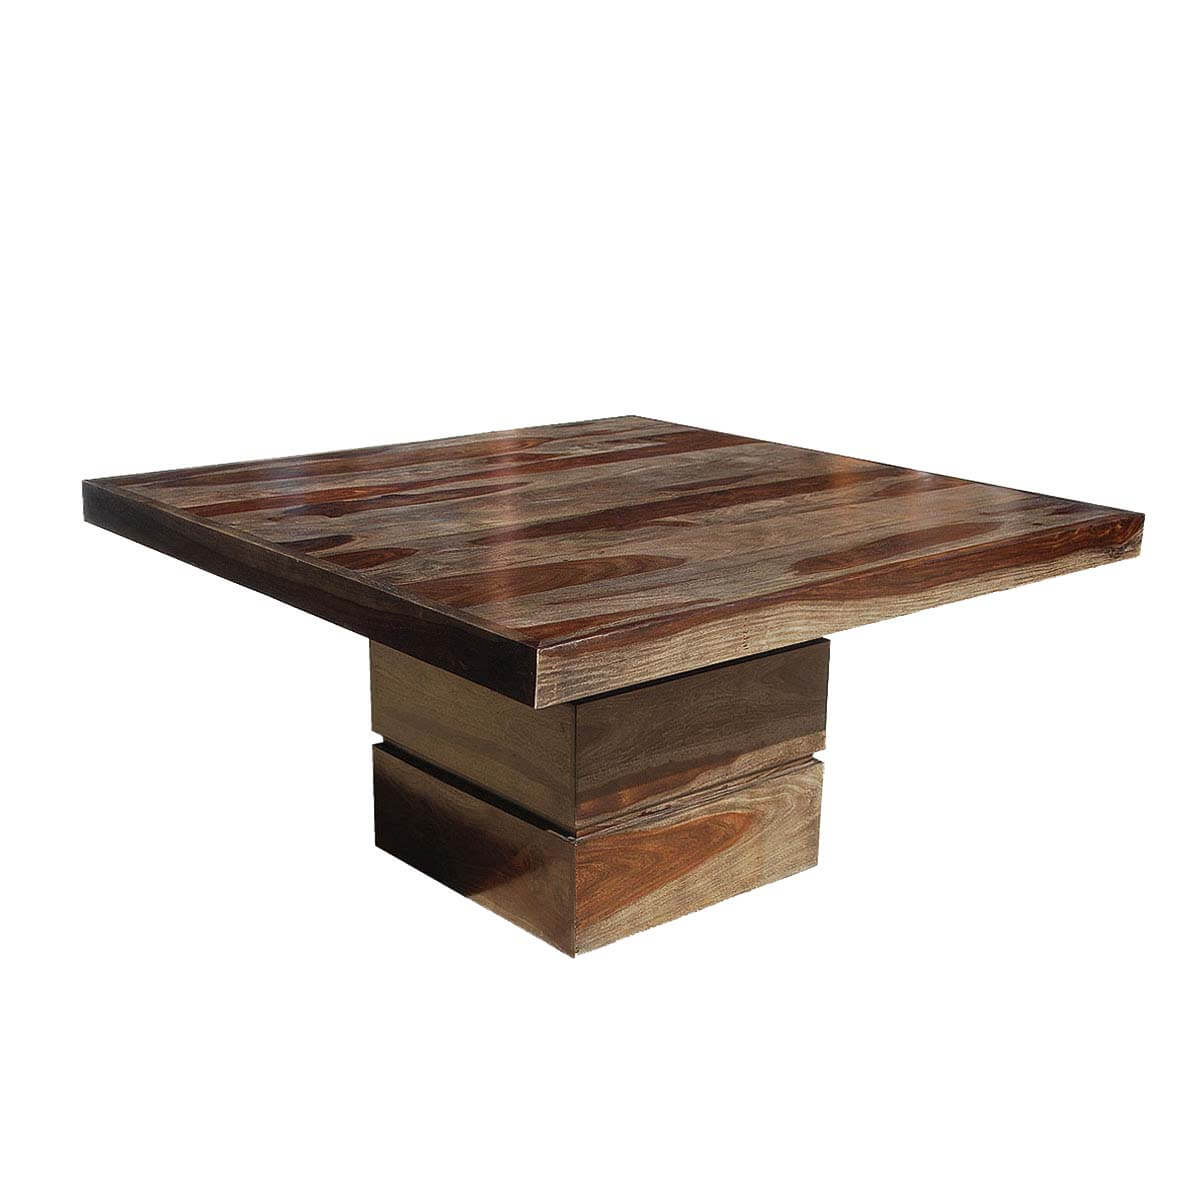 Wooden square dining table - Dallas Modern Solid Wood 48 Square Pedestal Dining Table